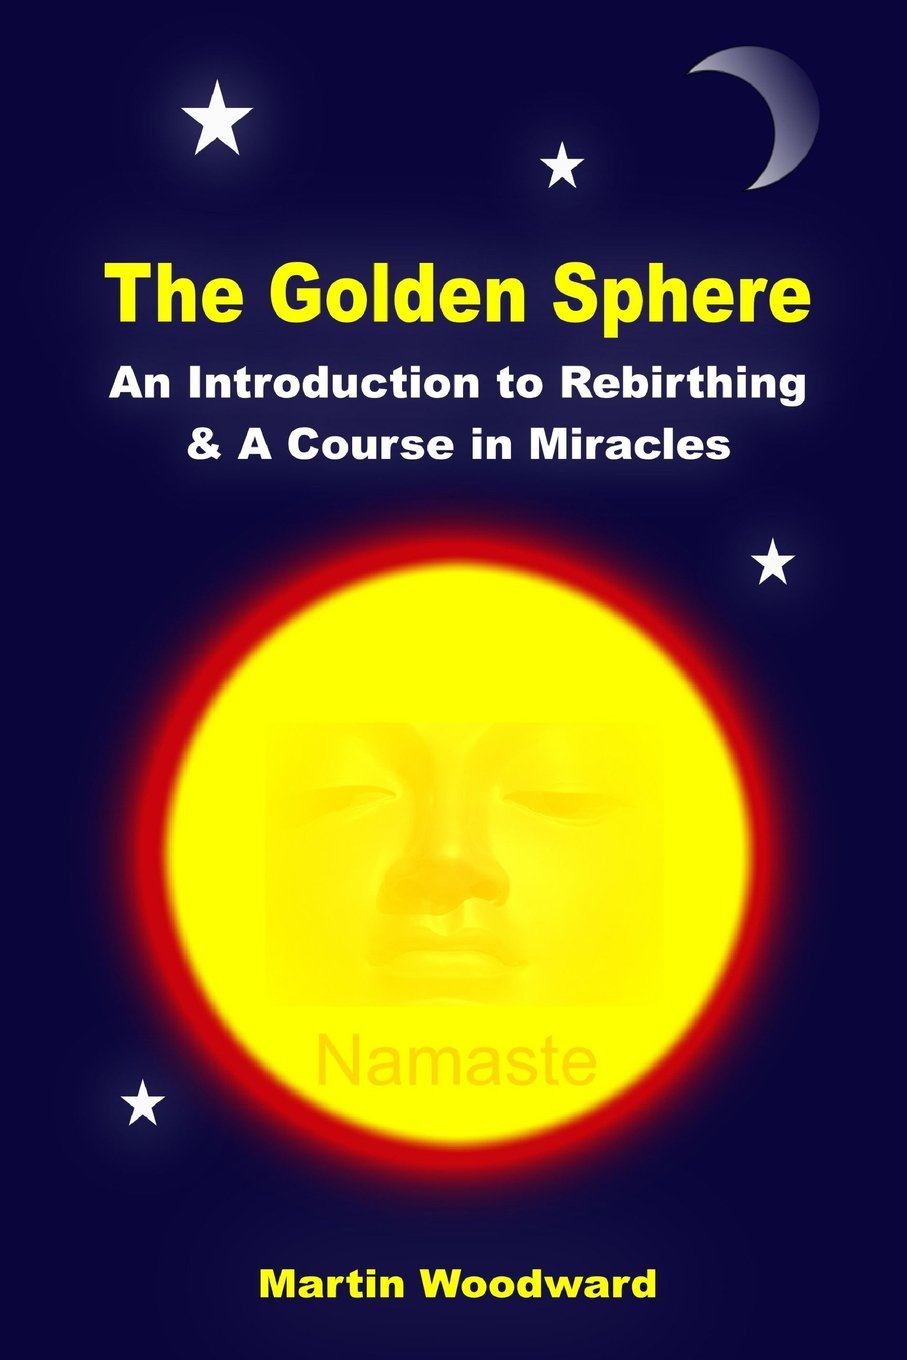 Download The Golden Sphere - An Introduction to Rebirthing and A Course in Miracles ebook